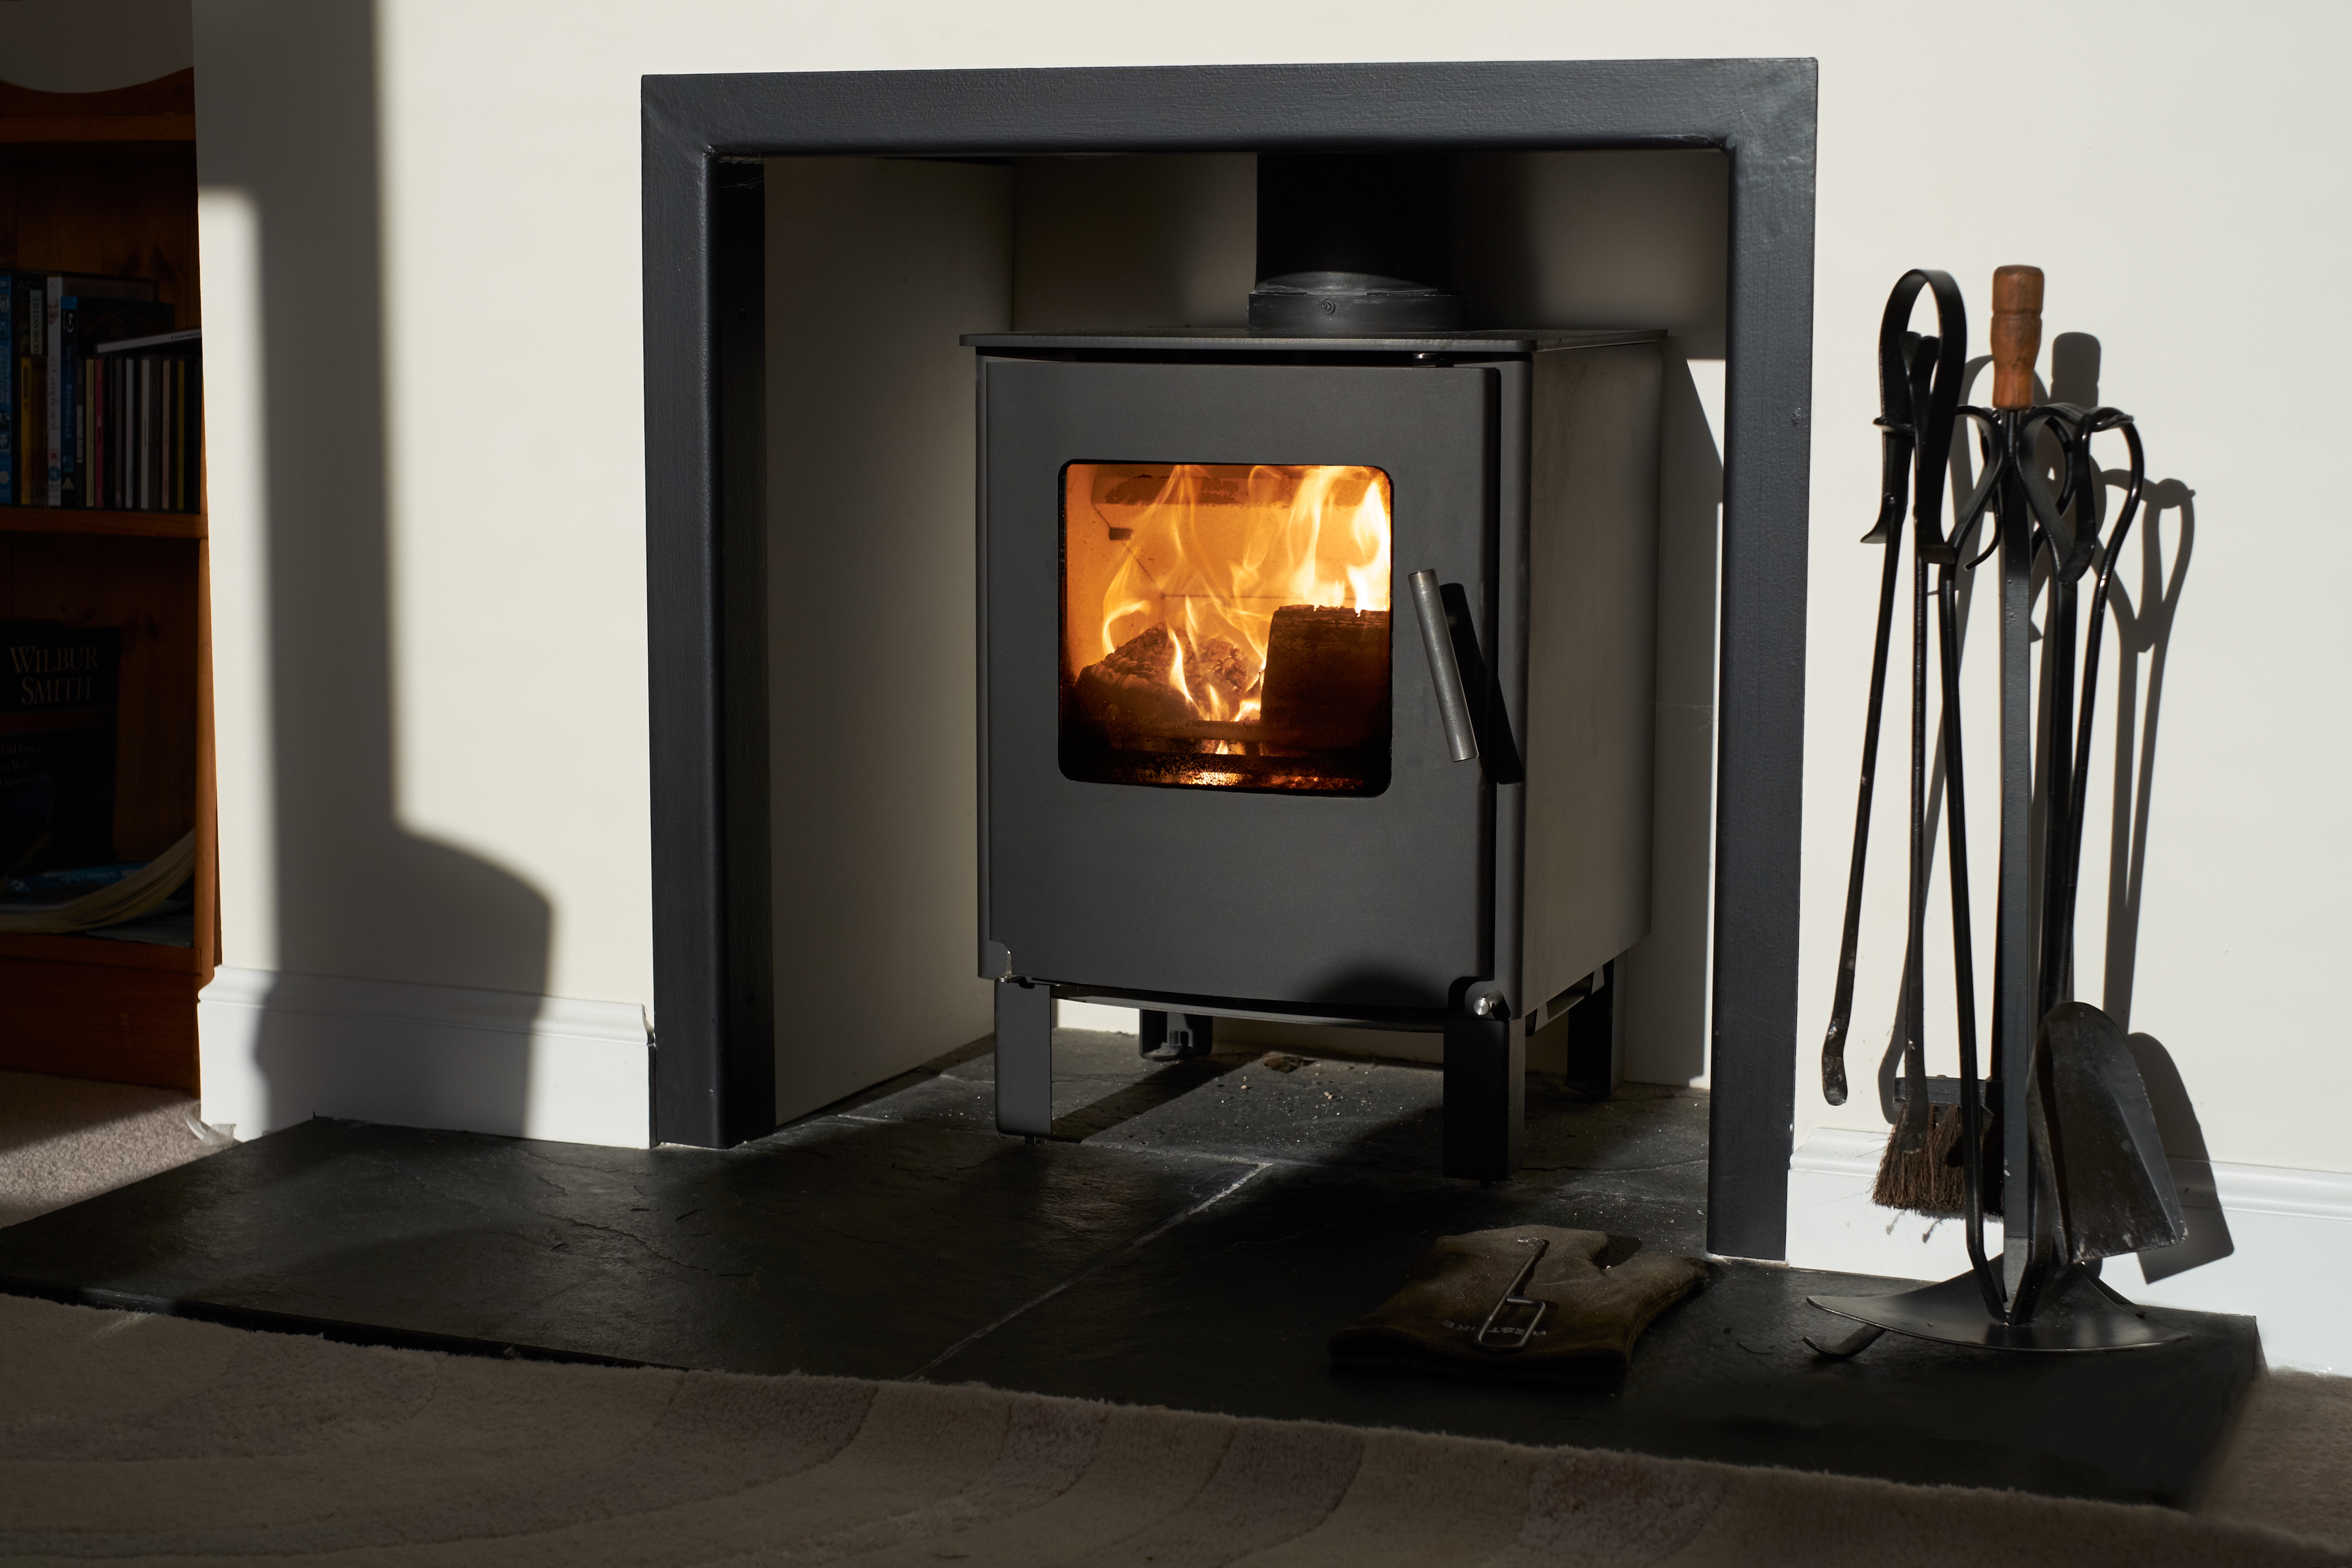 Wood burning stove, traditional heating system. Zero carbon footprint